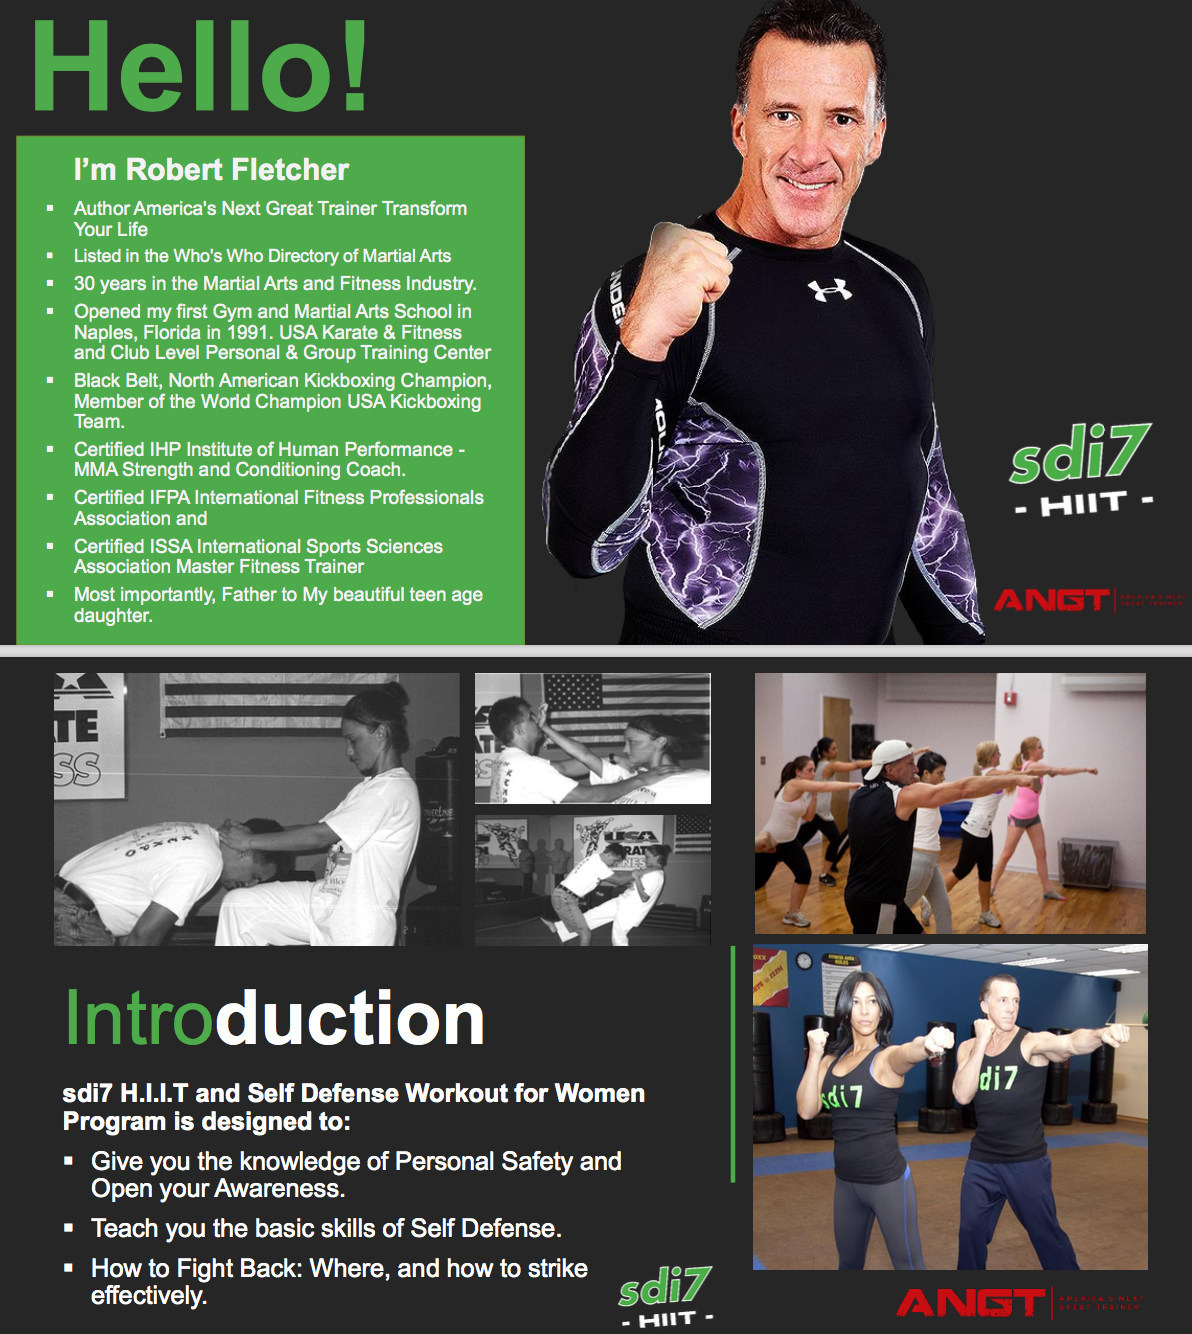 Fight Back! Self Defense and Fitness expert Rob Fletcher introduces a new dynamic program and workout: sdi7 HIIT and Self Defense Workout for Women. Offered to health clubs, gyms, colleges, universities, high schools, and special event workshops. Customized according to needs and objectives. Including College Campus Safety, Prevention, and Awareness. Available as 6-week programs, seminars, and presentations. Rob is available for special appearances, article contributions, radio, and television. robfletcherenterprises.com